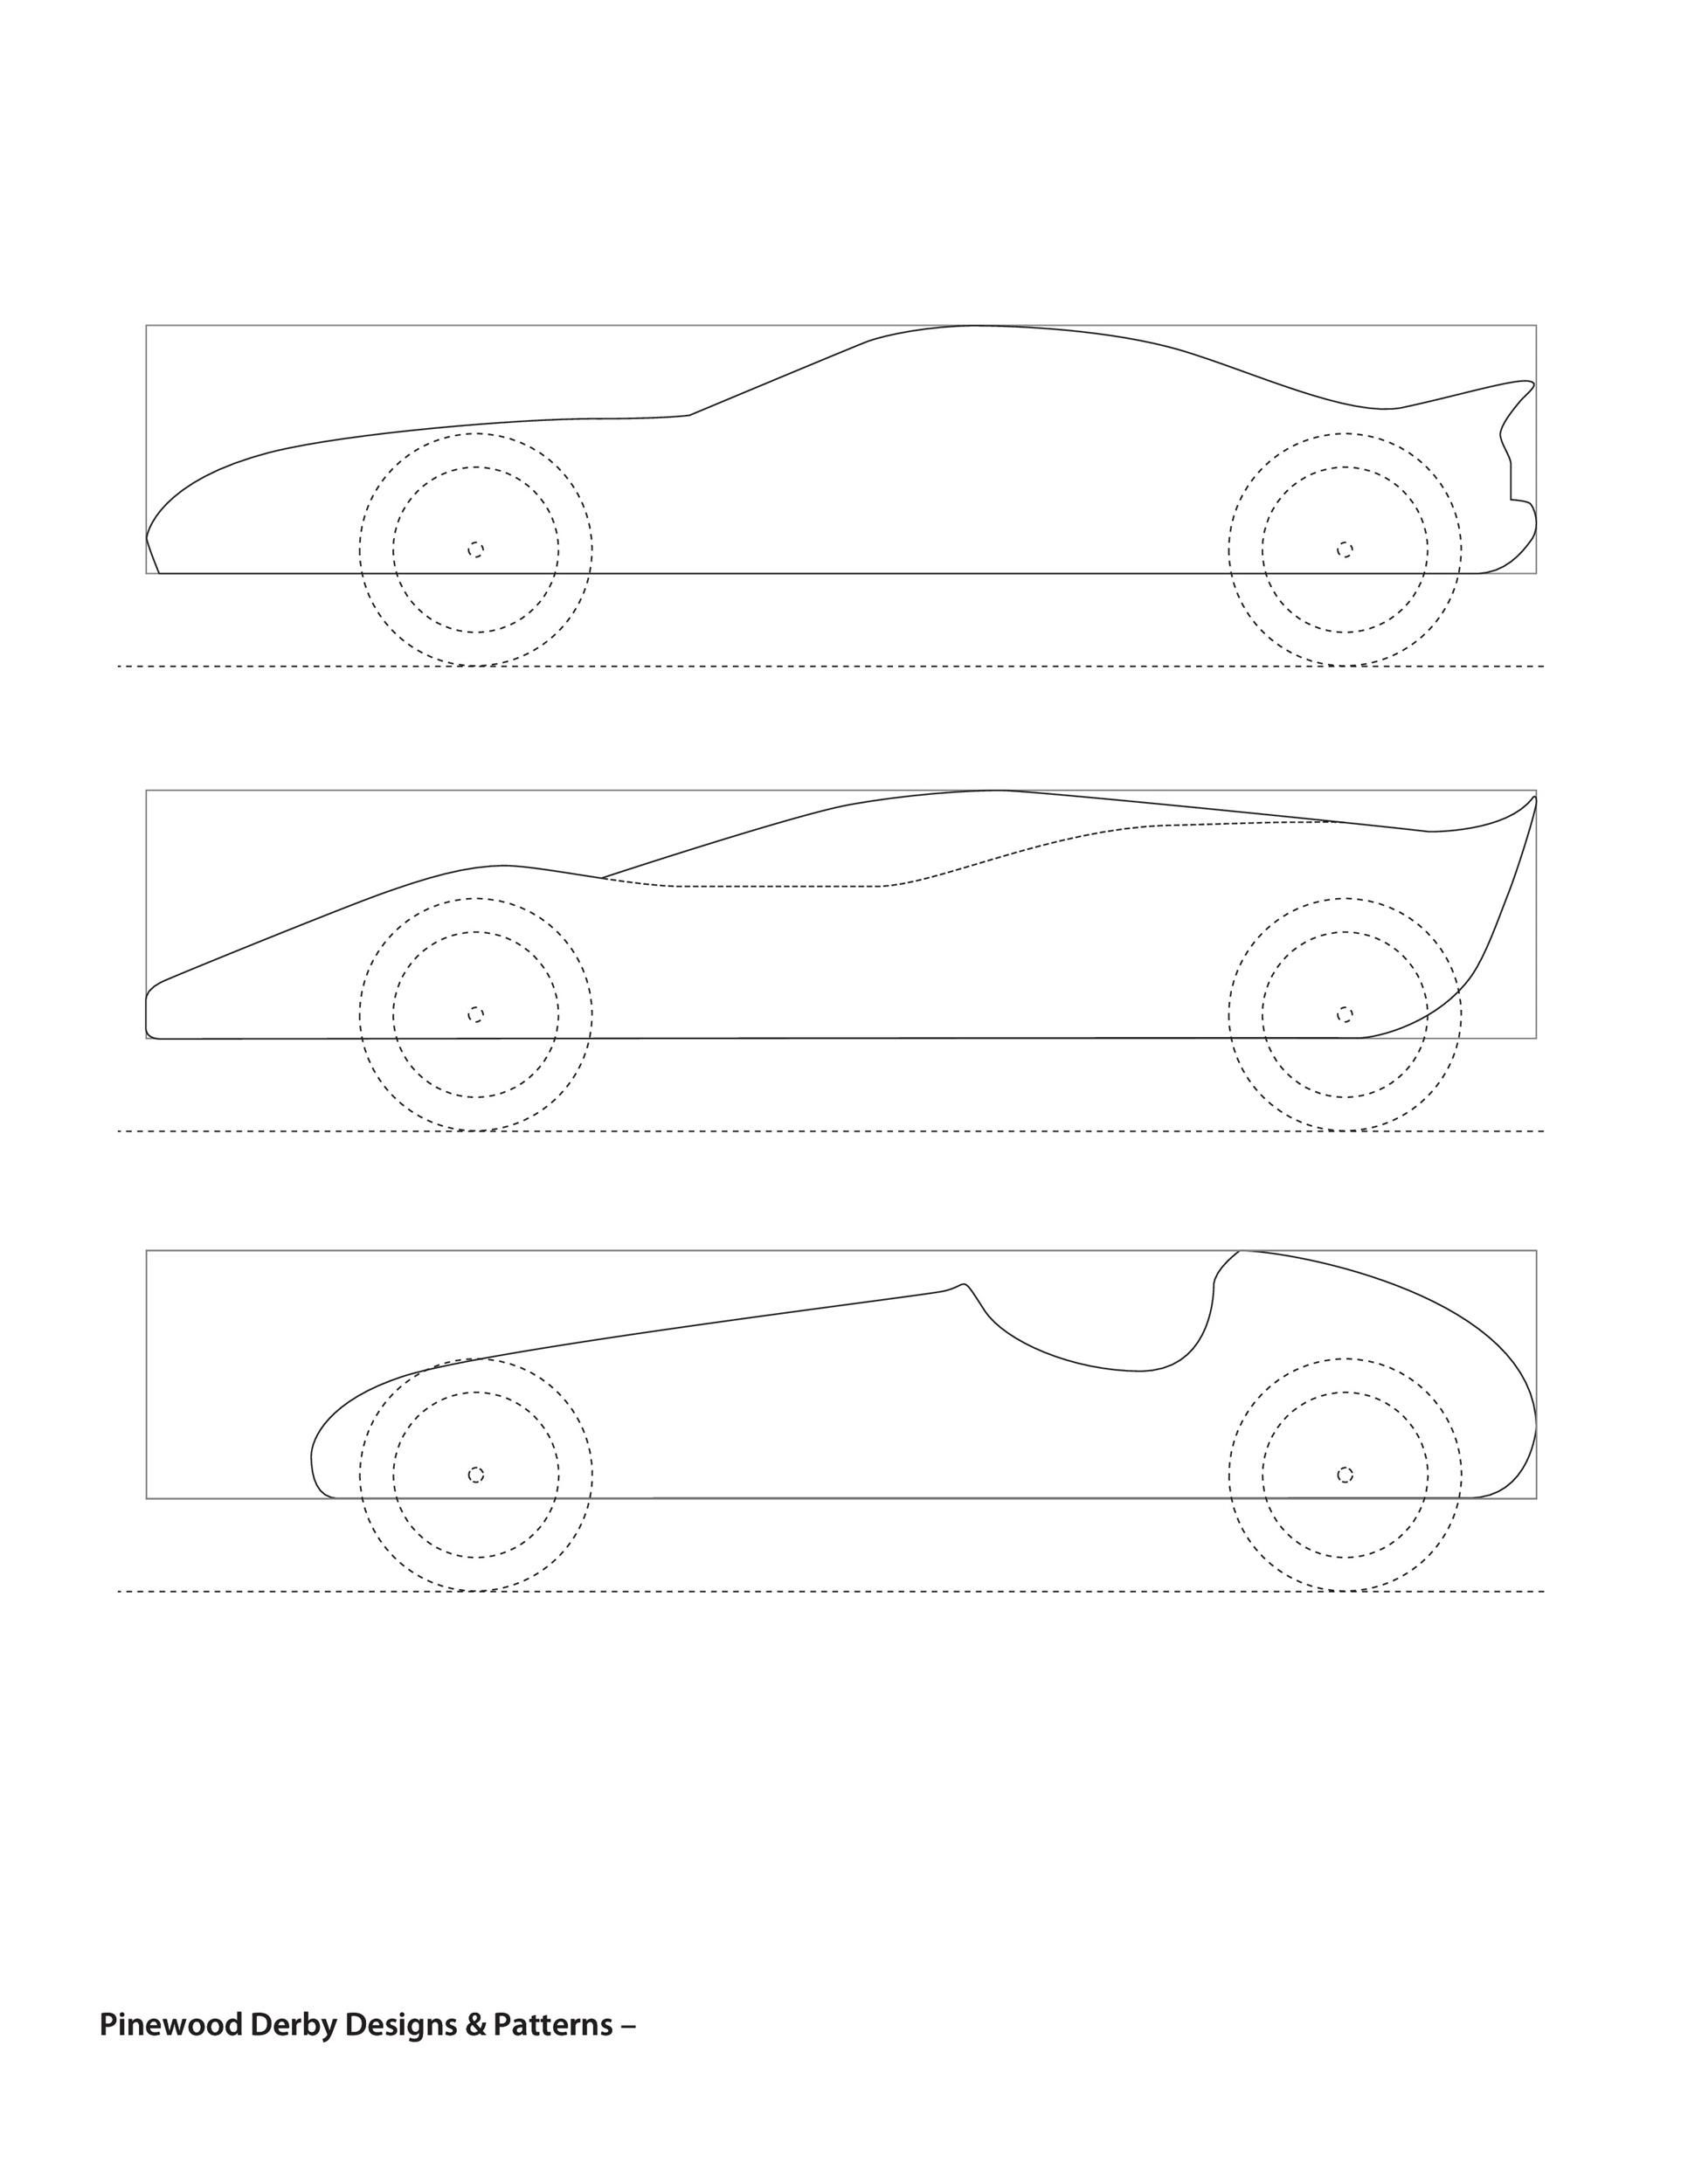 007 Incredible Pinewood Derby Car Design Template High Def  Fast WedgeFull